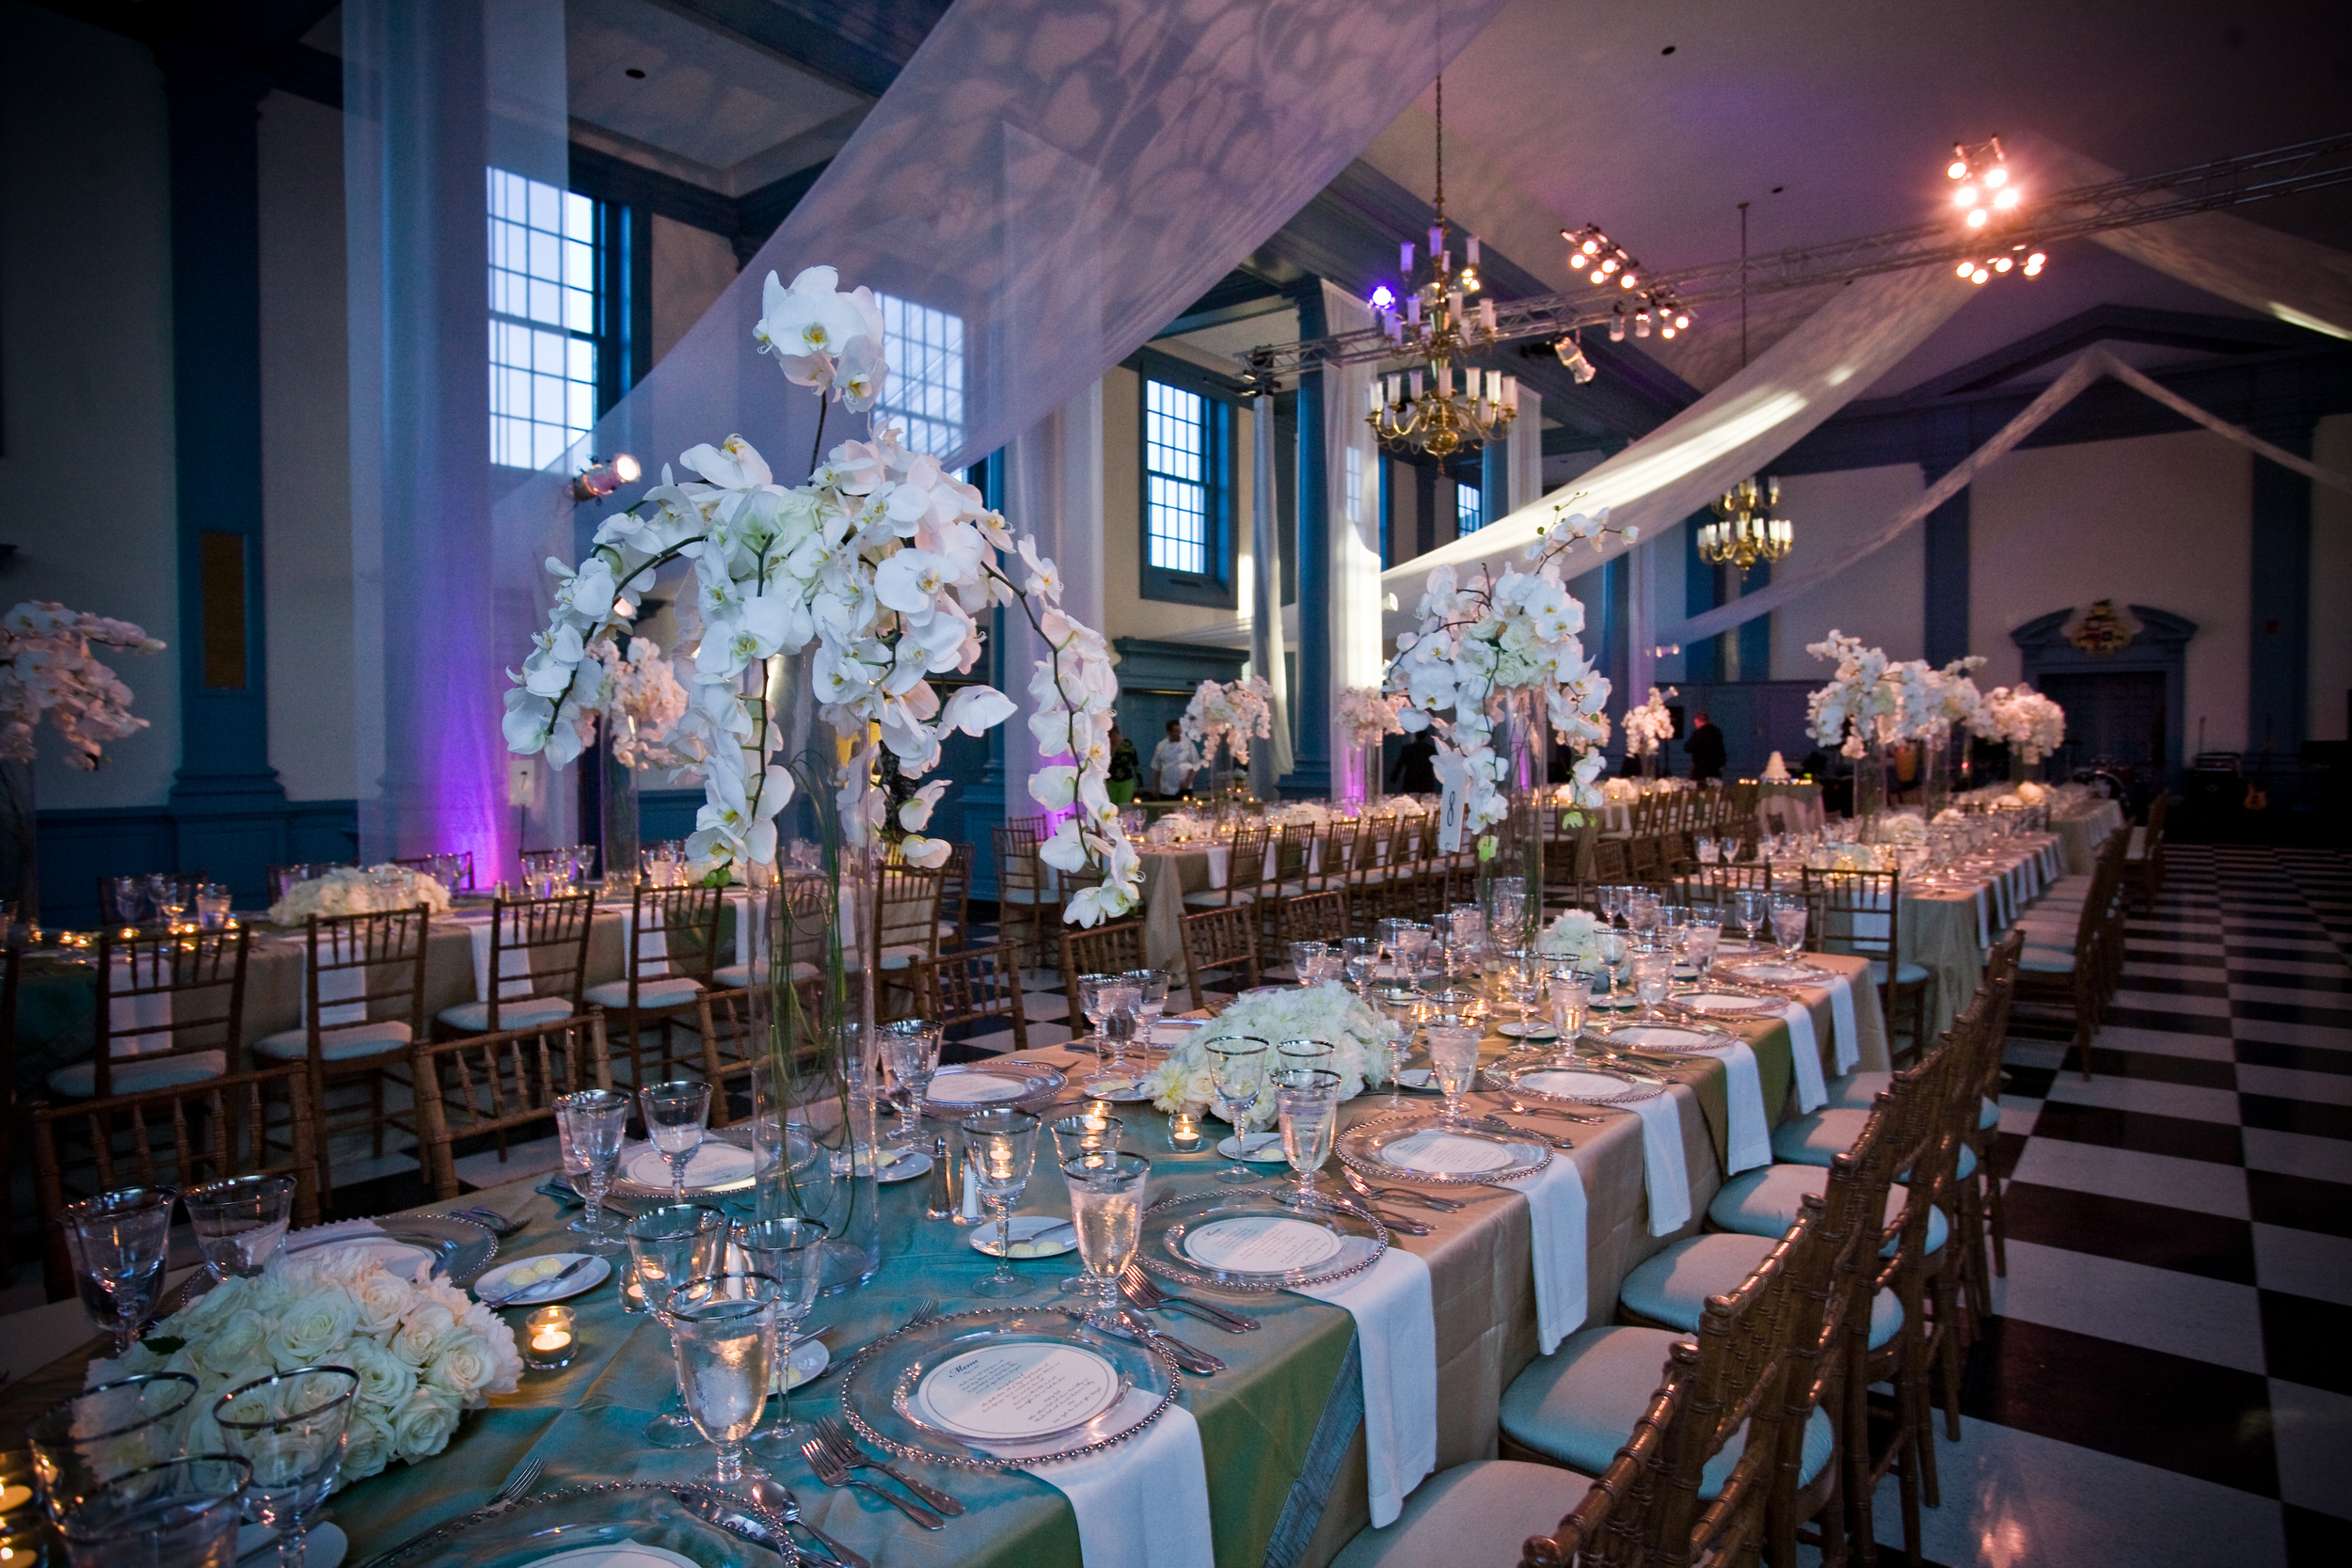 Fabric Projection - Weddings - Rentals and Staging - The AV Company